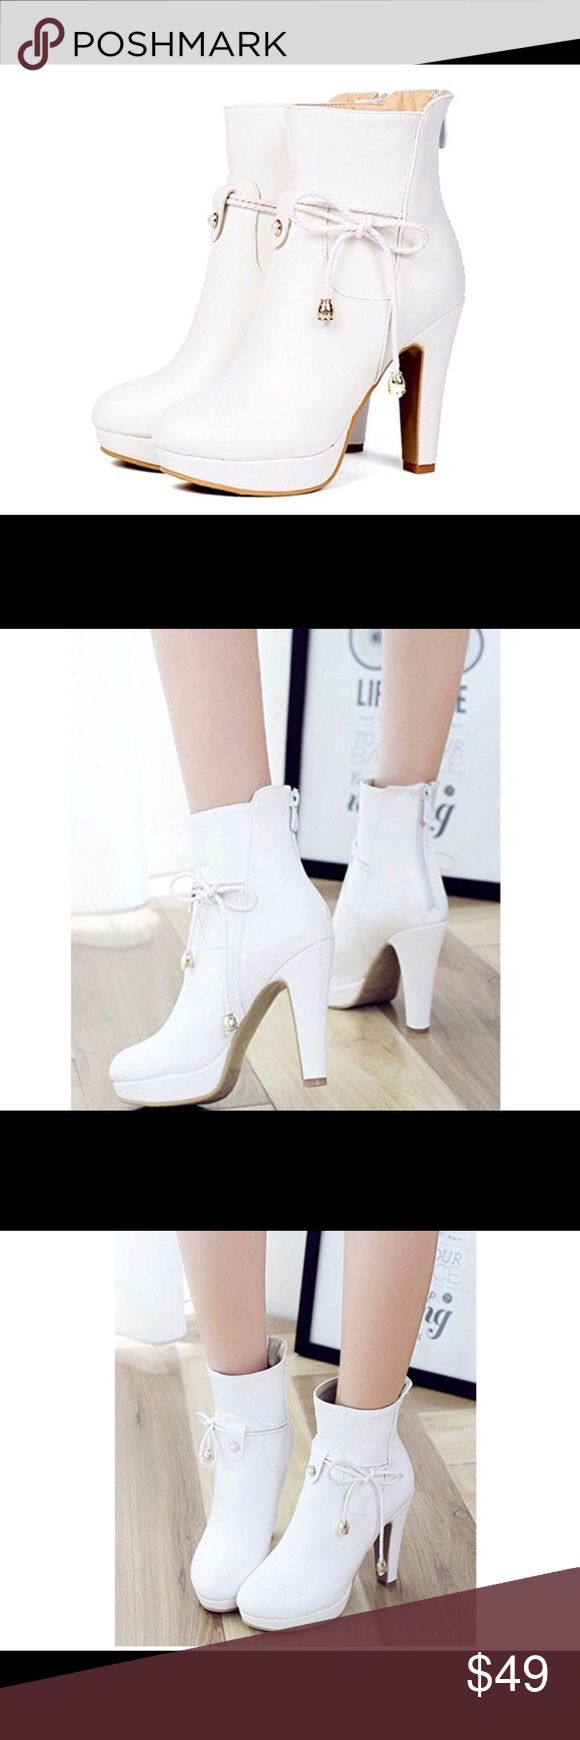 """White boots / Very cute white ankle booties 4"""" heel w/ 1"""" platform  Zipper in the back/ strings w/silver accents  New in the box 📦  Size 6.5.  Man made material/ faux leather.  Made in China.            Super cute/ too small for me Aisun Shoes Ankle Boots & Booties"""